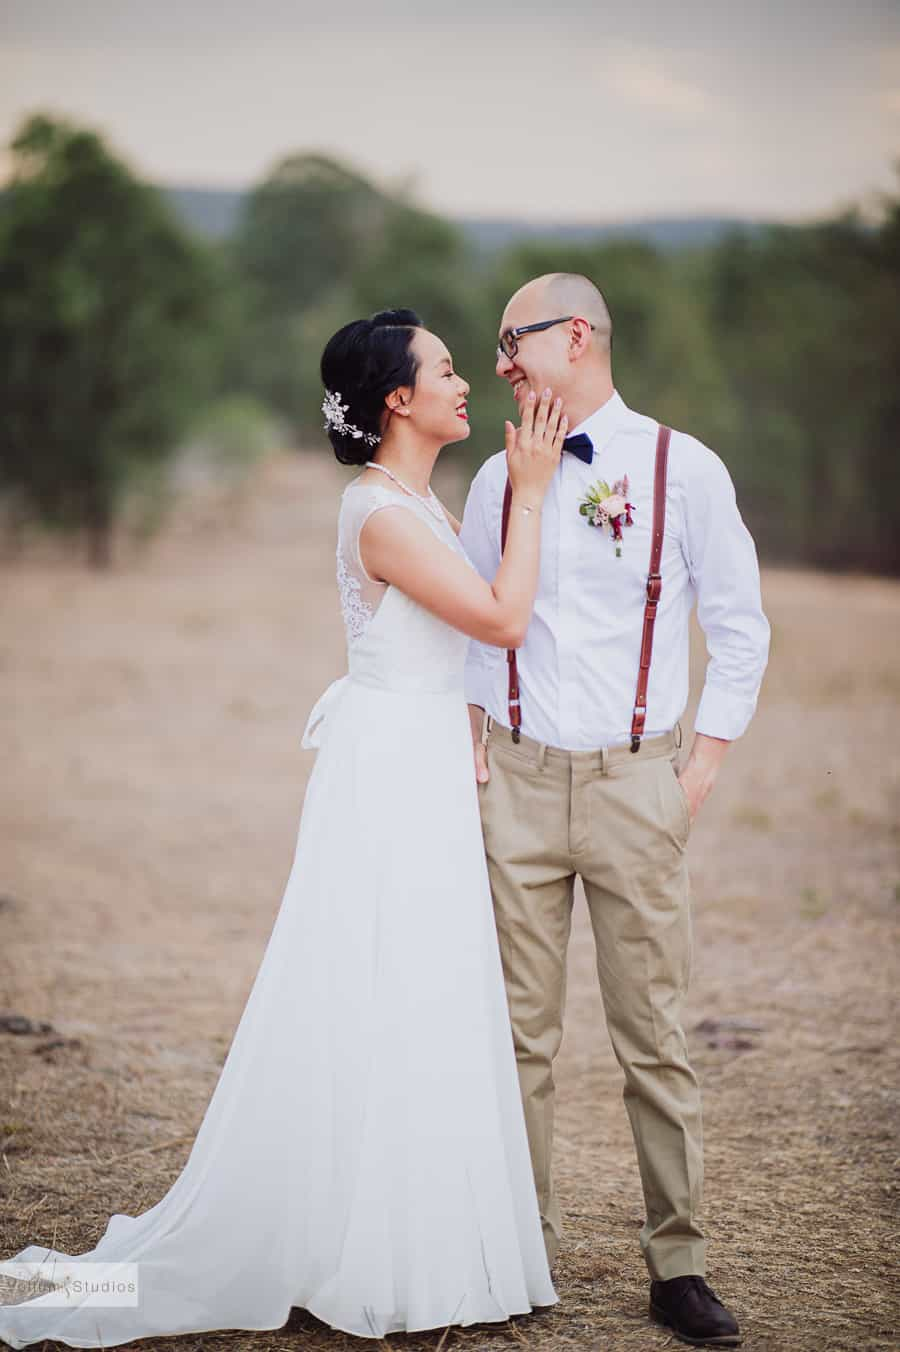 Spicers_Hidden_Vale_Wedding - photographer